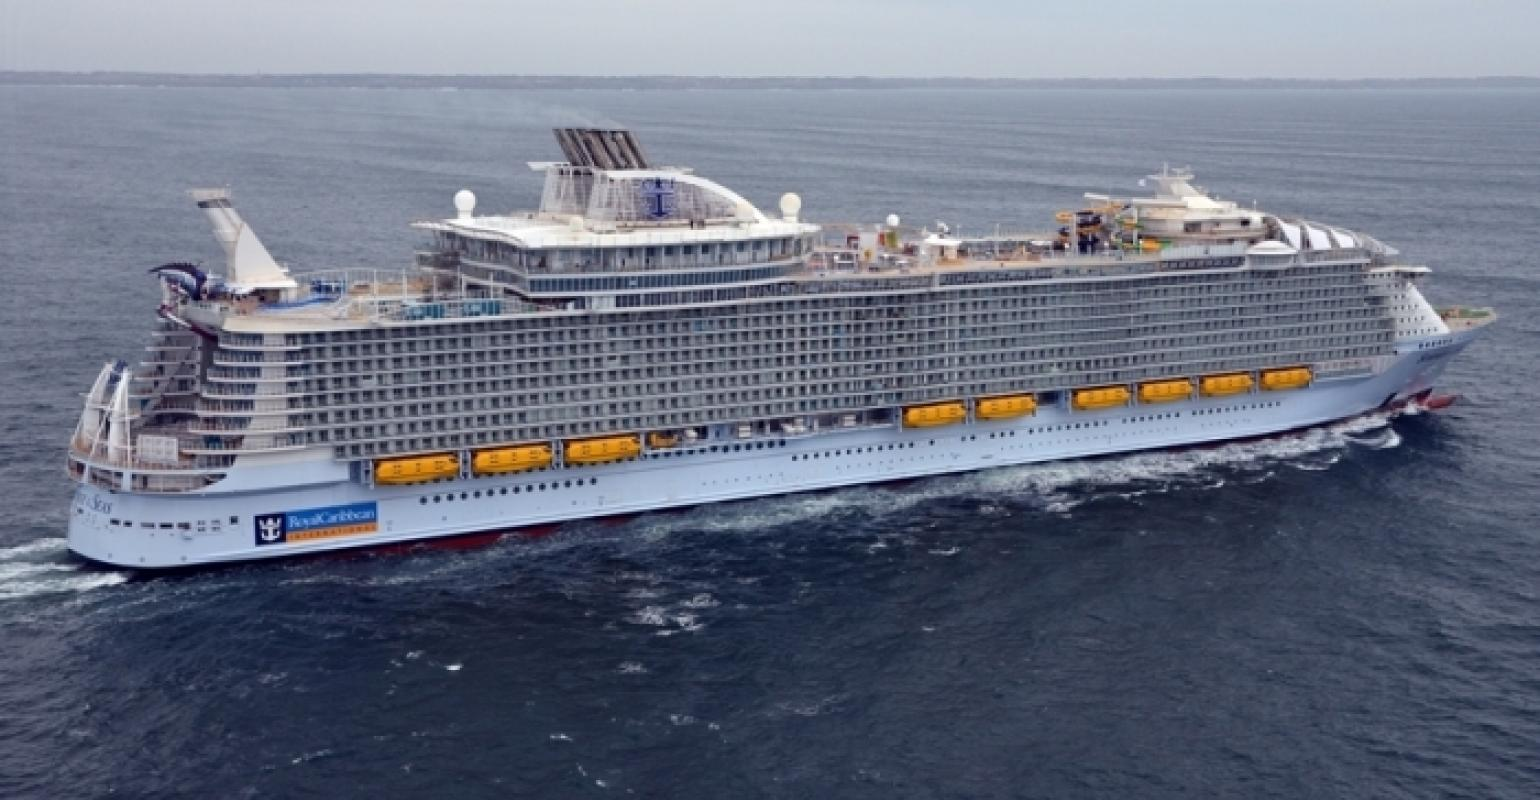 Behold The New World's Largest Cruise Ship